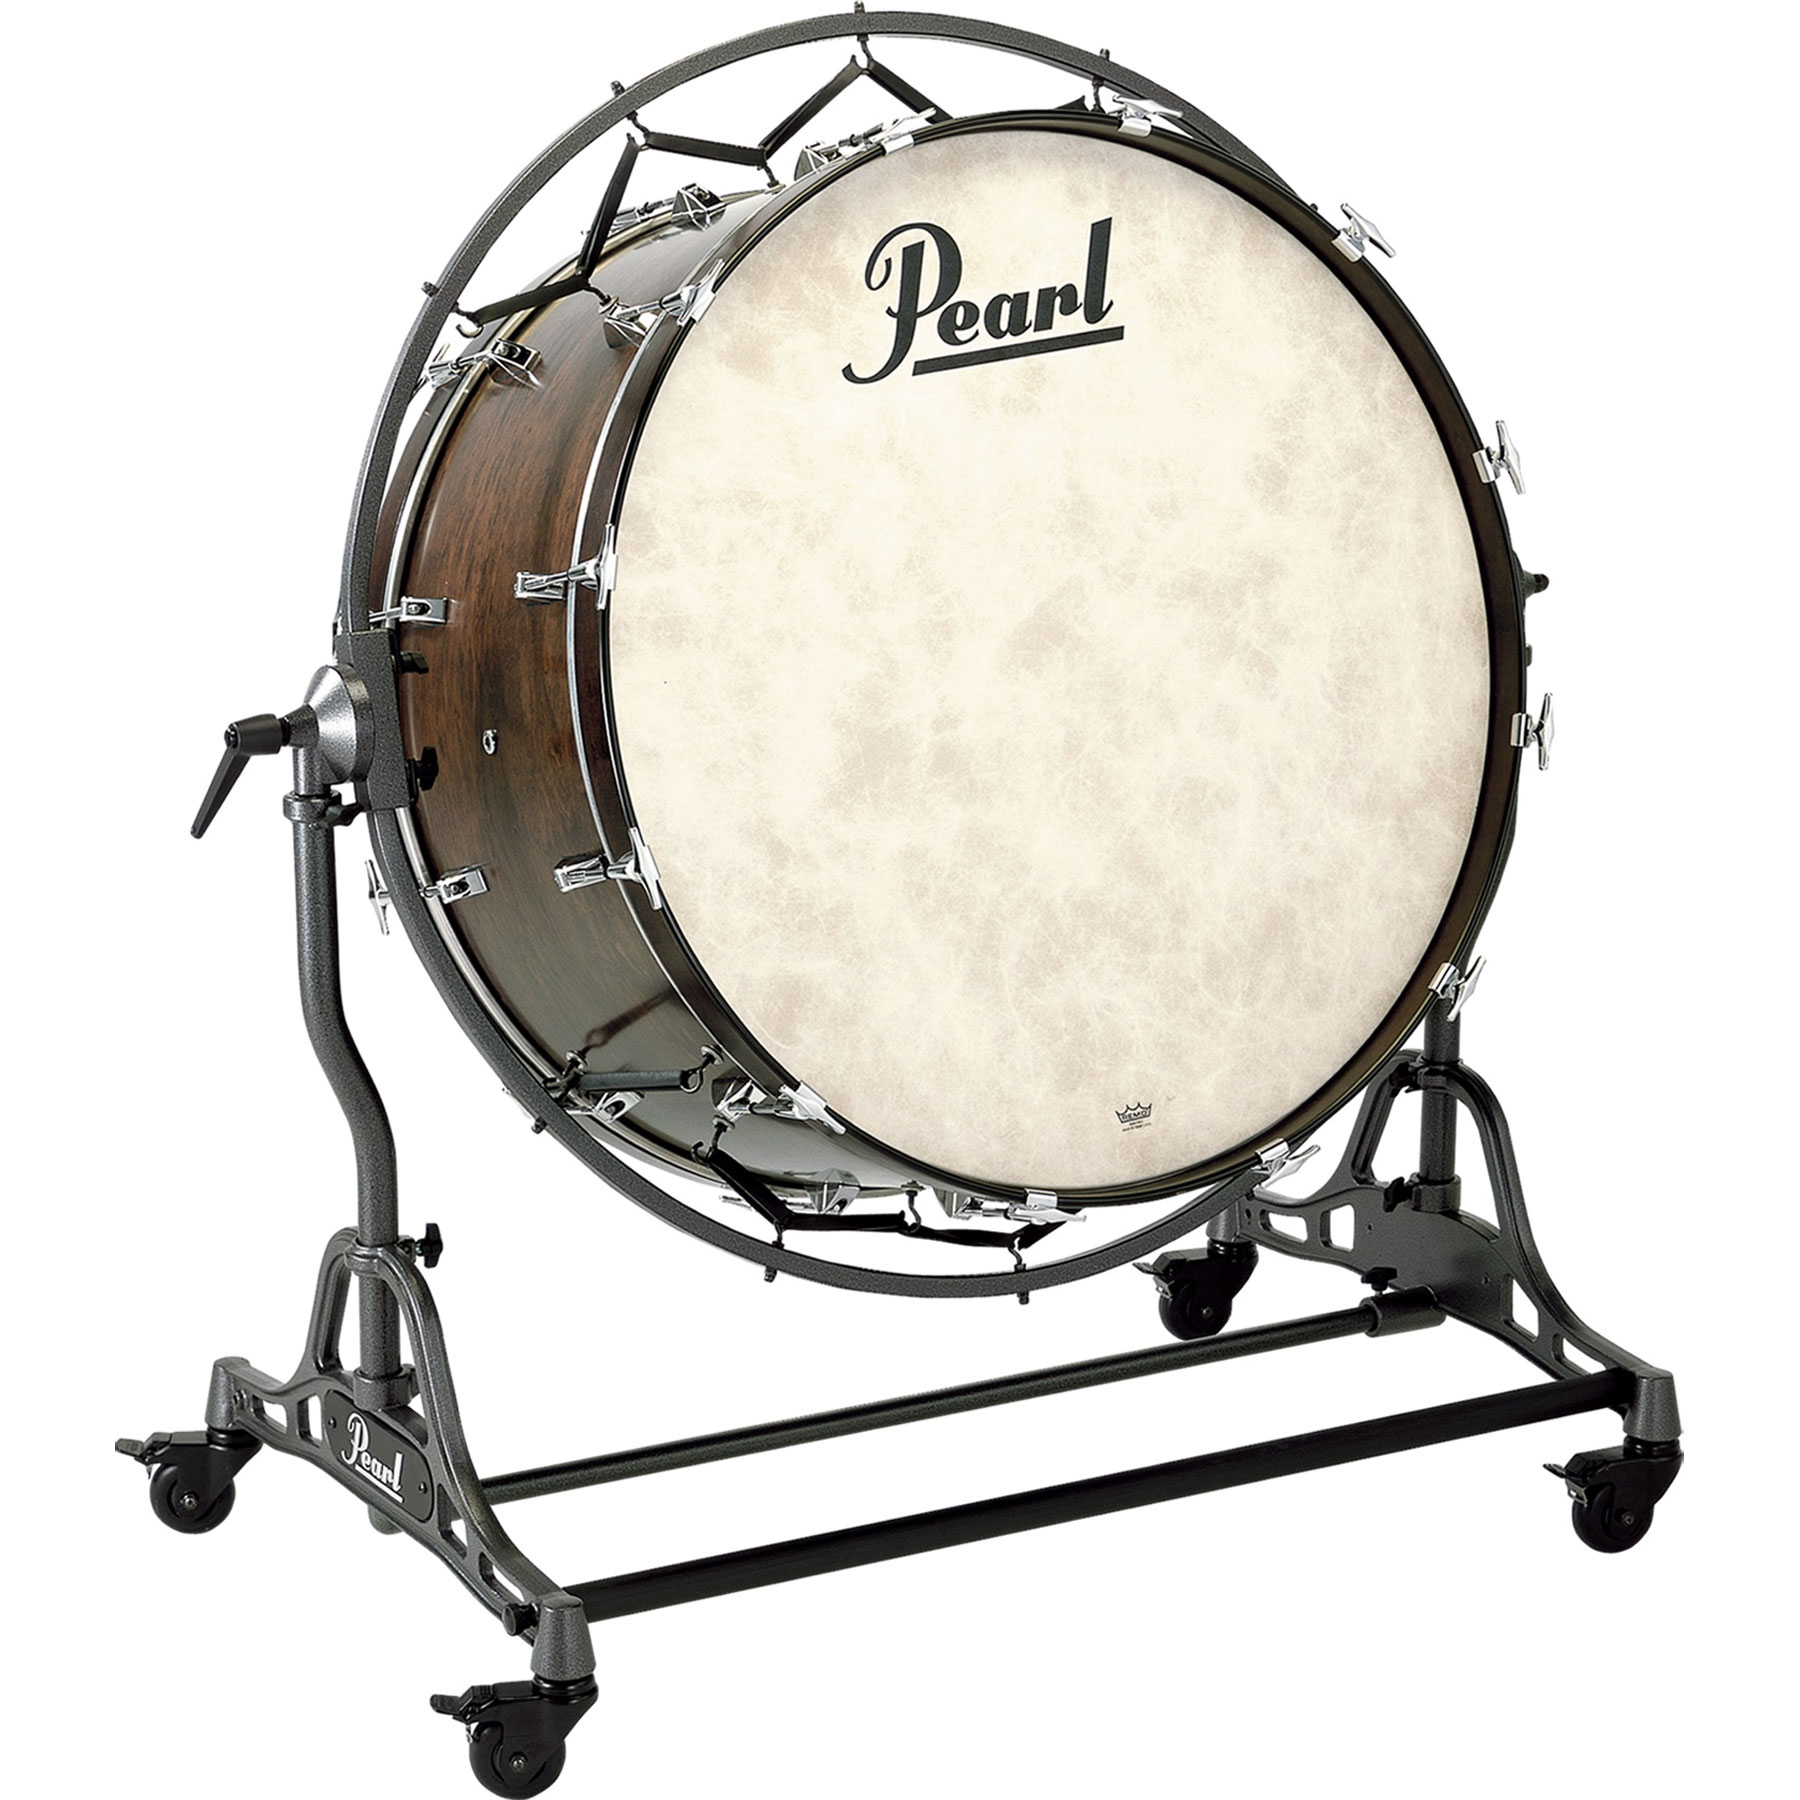 "Pearl 32"" (Diameter) x 16"" (Deep) Philharmonic African Mahogany Concert Bass Drum with STBD Stand"